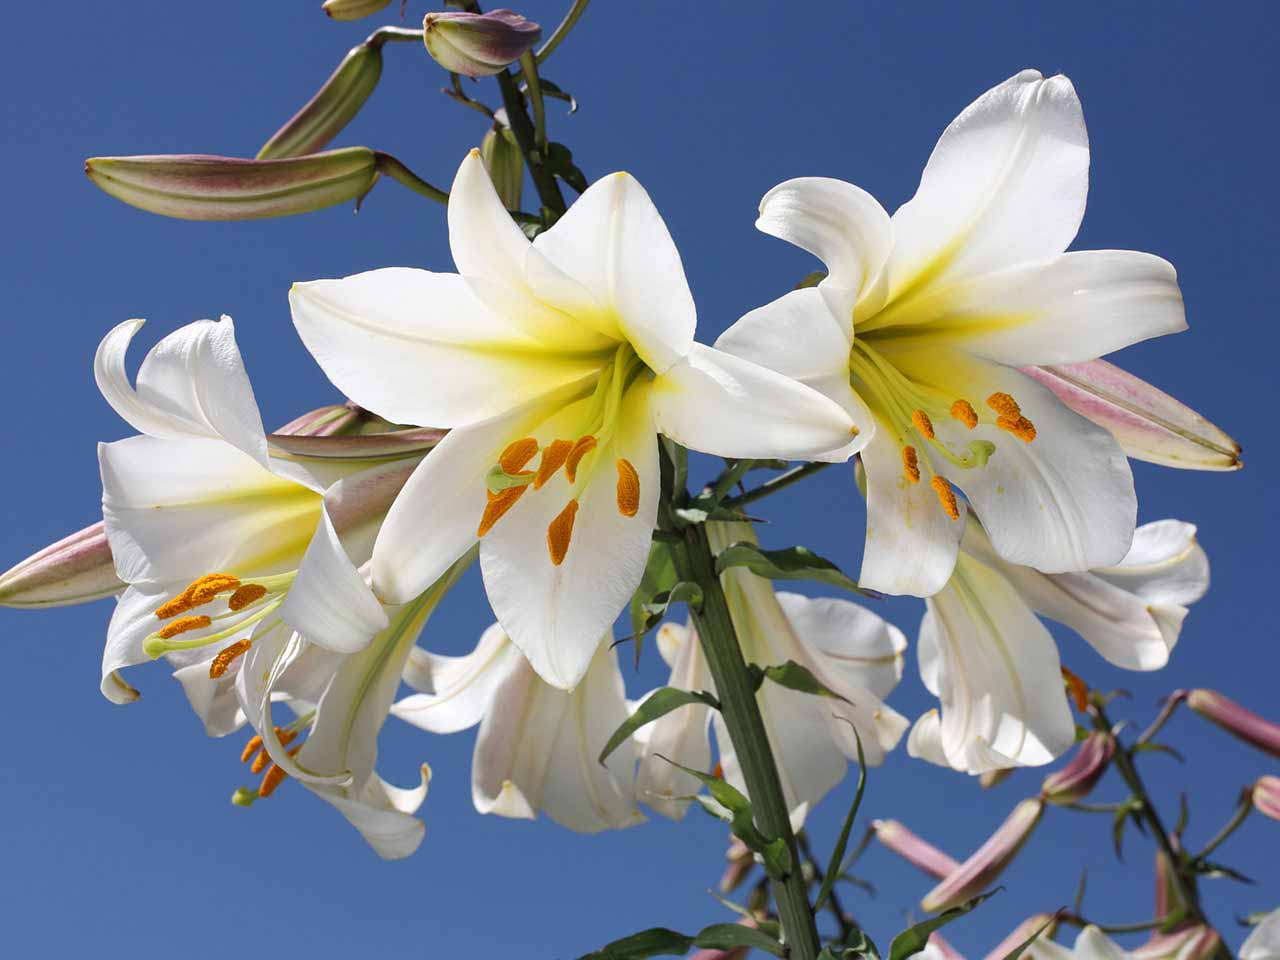 White lilies against a blue sky